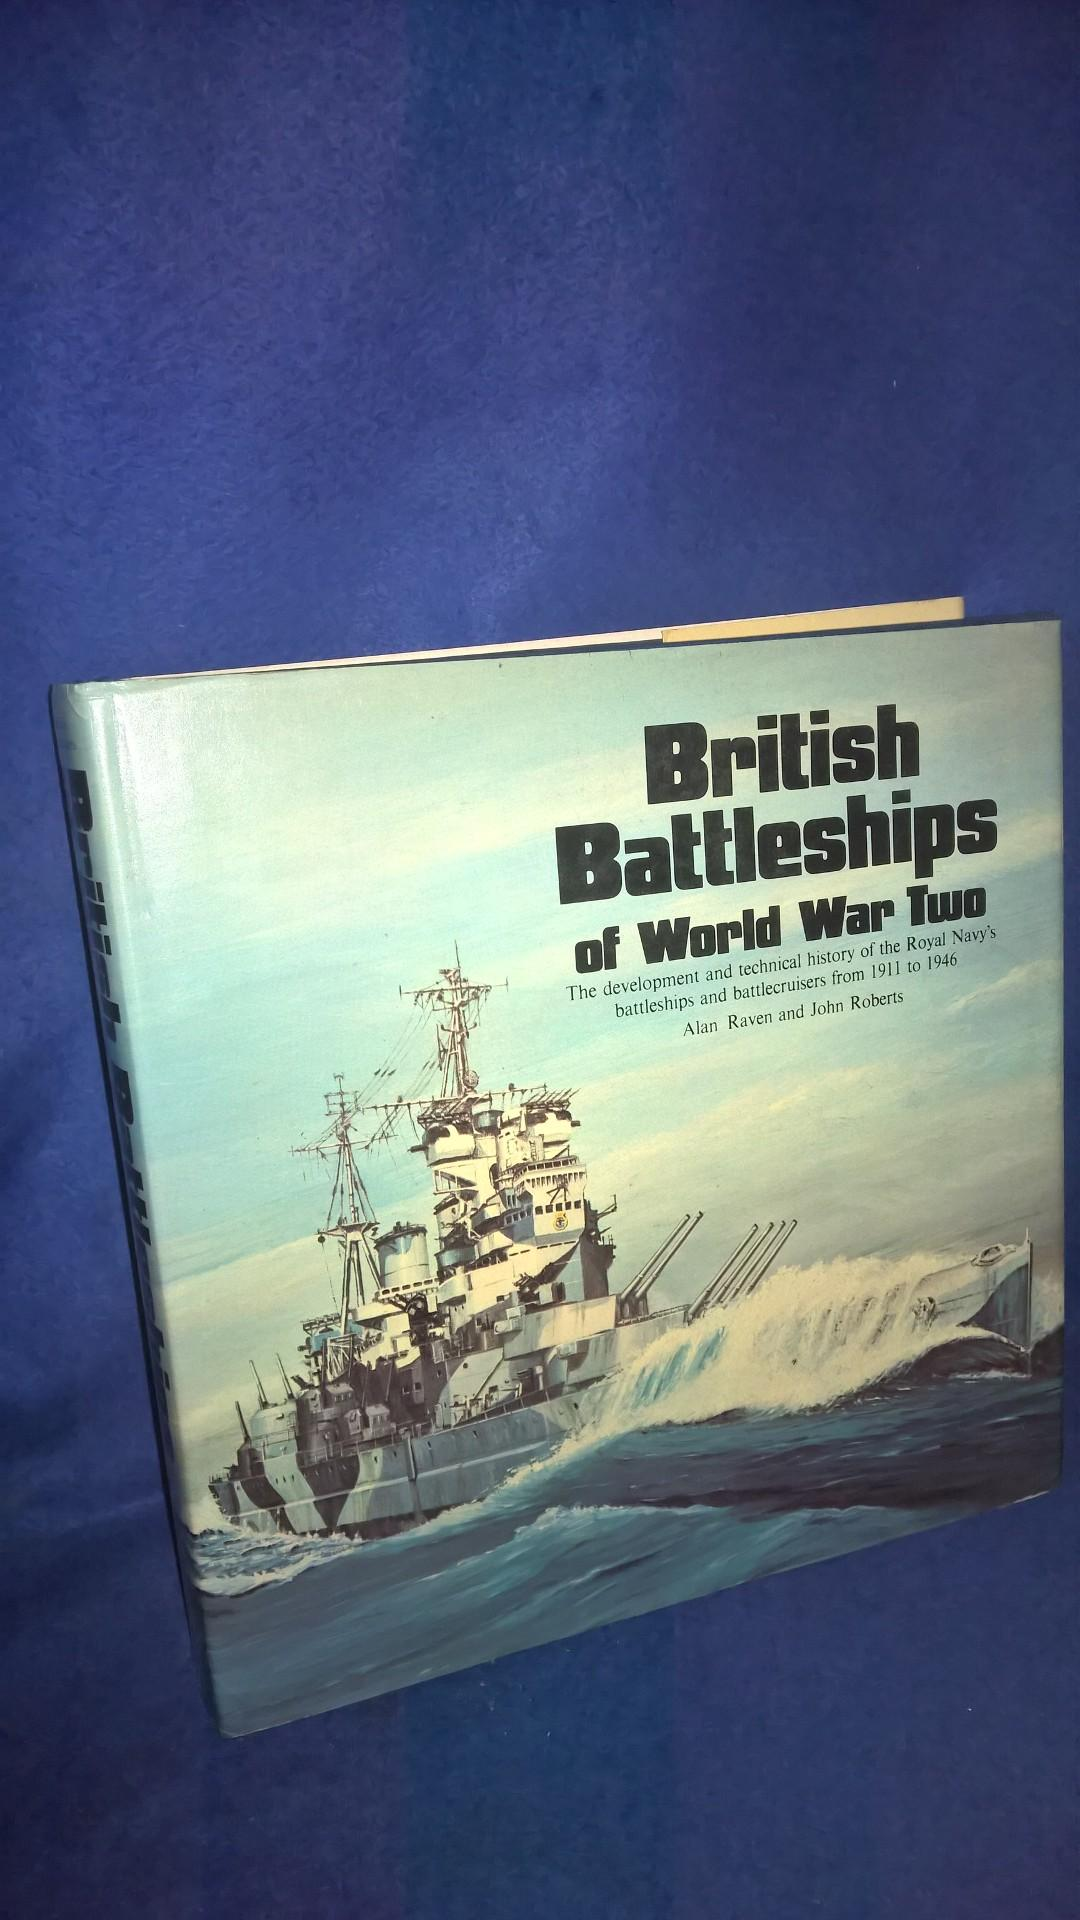 British Battleships of World War 2. The Development and Technical History of the Royal Navy´s Battleships and Battlecruisers from 1911 to 1946.